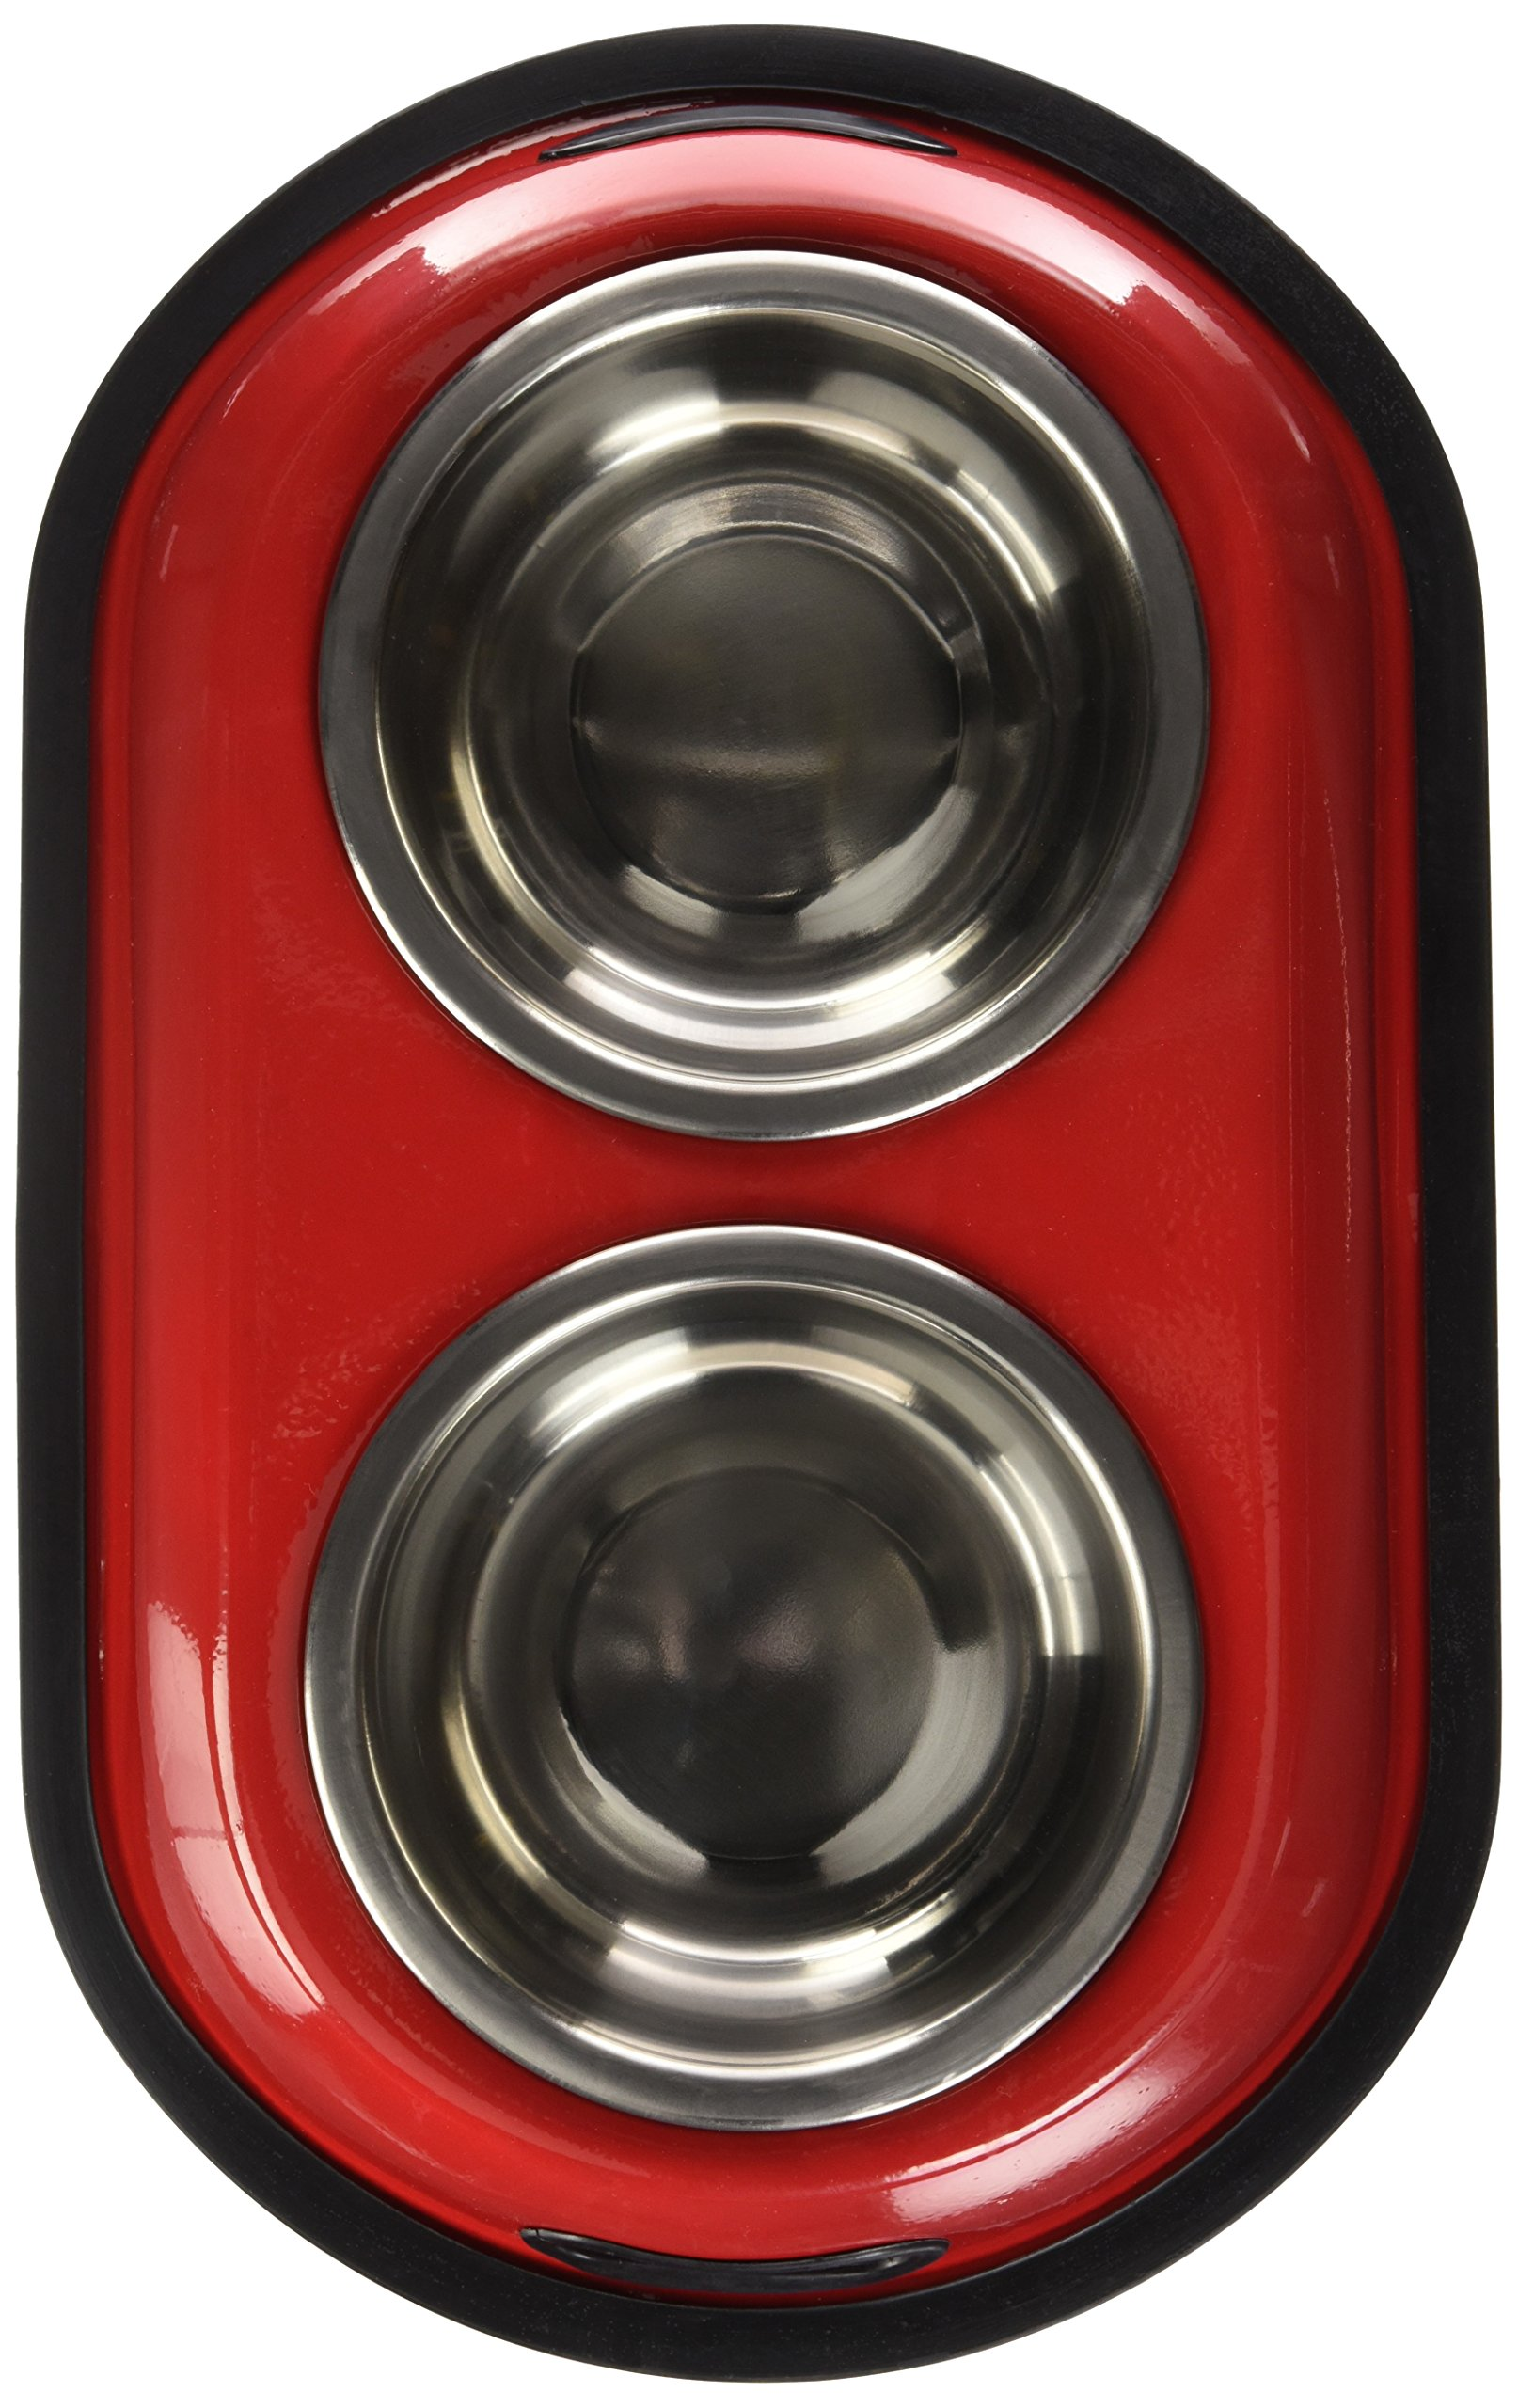 Iconic Pet 2 Cup Color Splash Stainless Steel Double Diner for Dog/Cat (2 Pack), Red, 16 oz